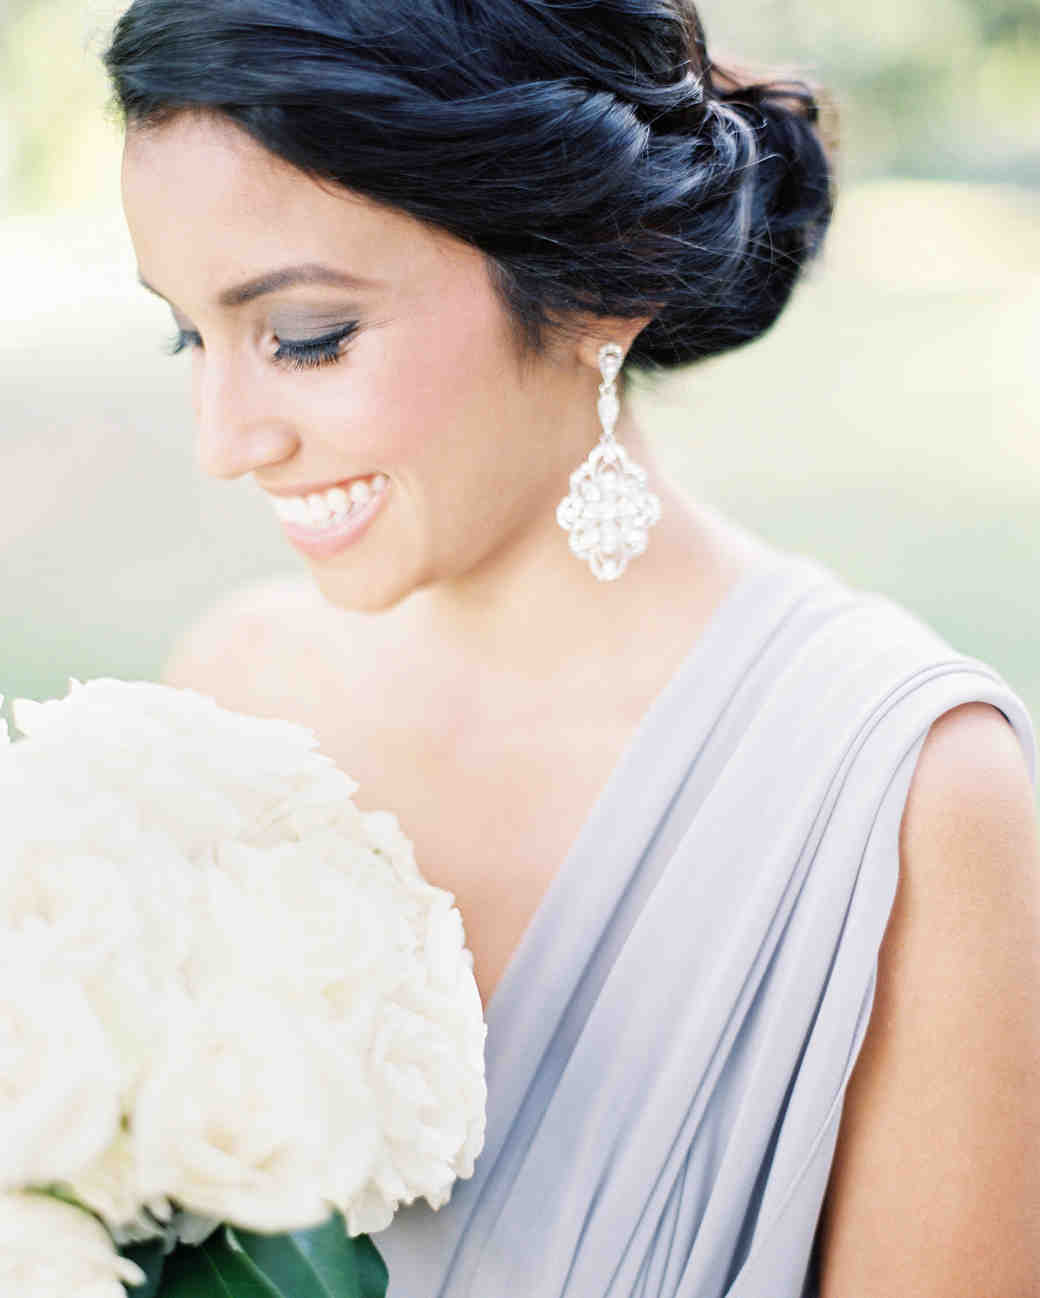 Bridesmaid Hair: Pretty Wedding Hairstyles For Your Bridesmaids